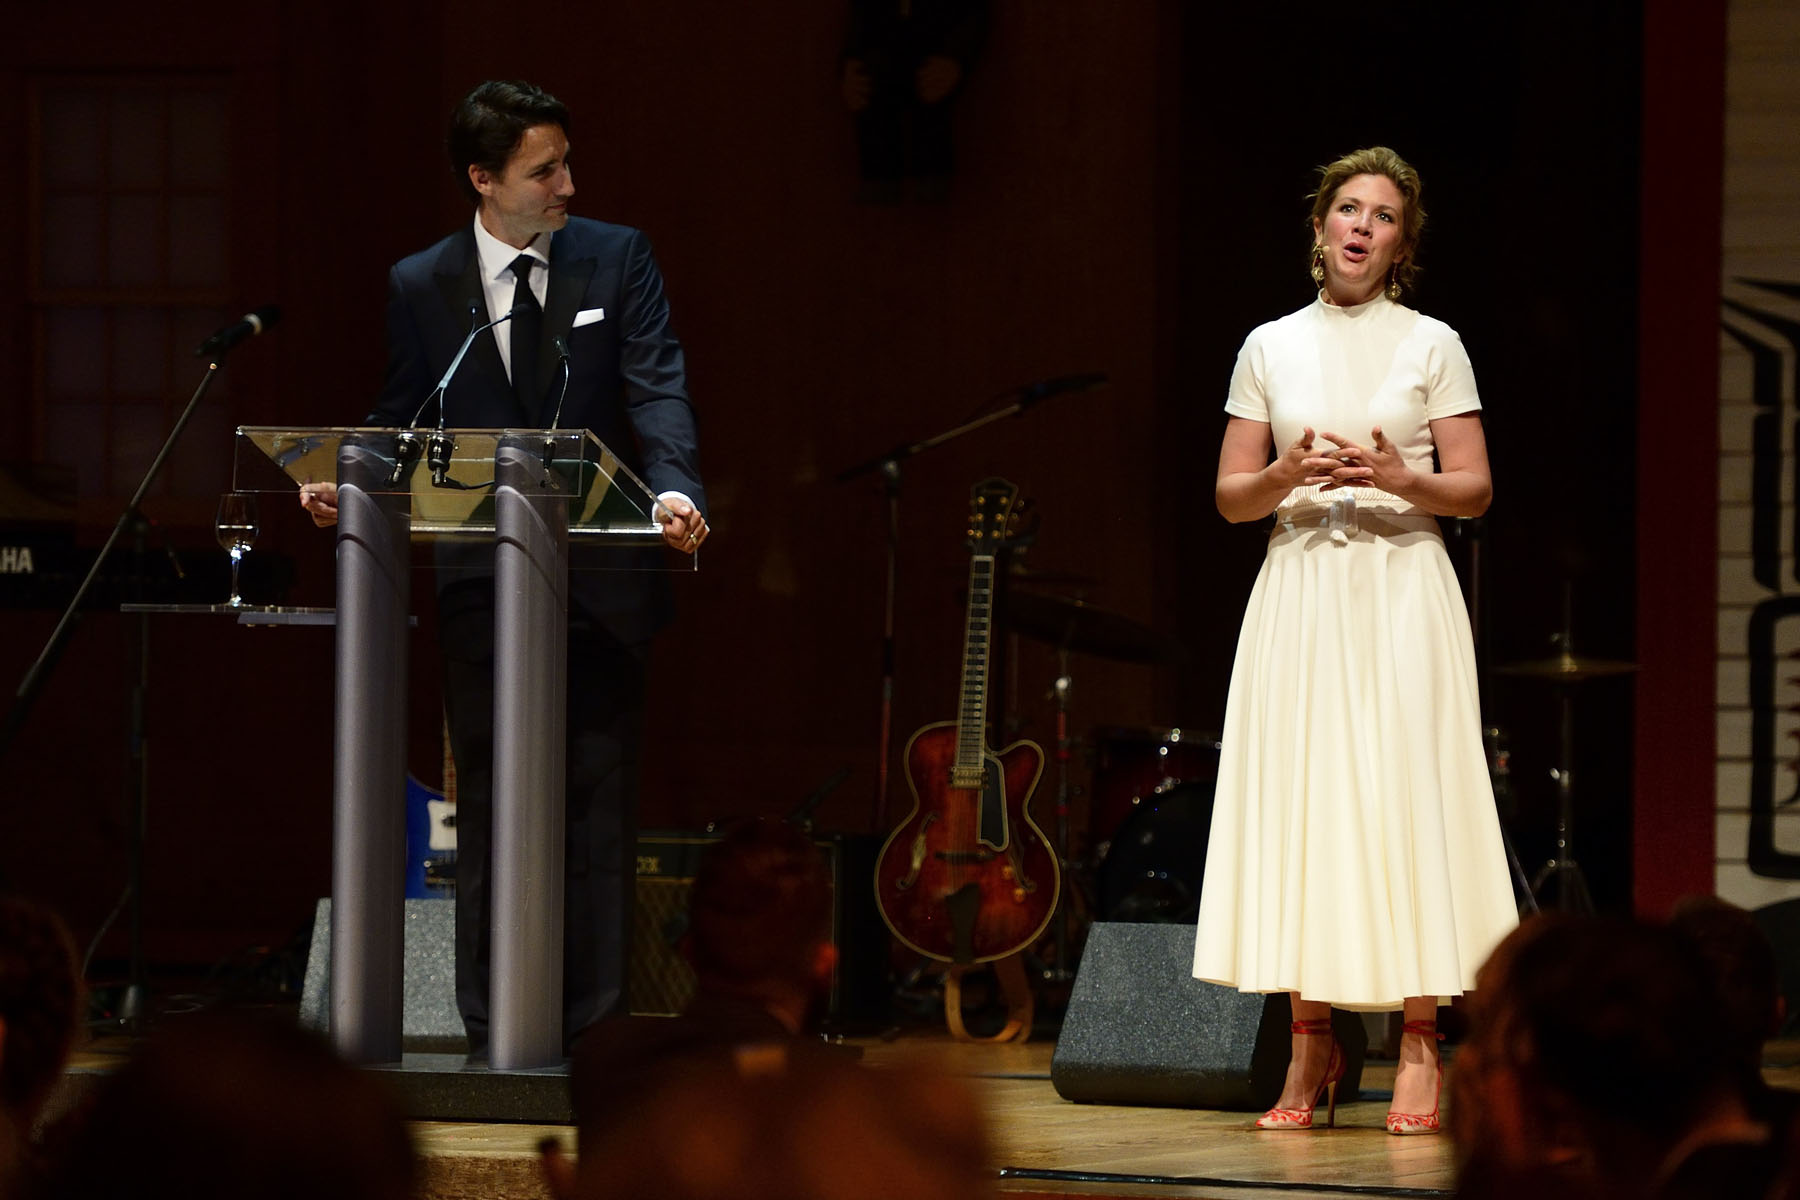 Prime Minister Justin Trudeau and Mrs. Sophie Grégoire-Trudeau offered an entertaining speech.